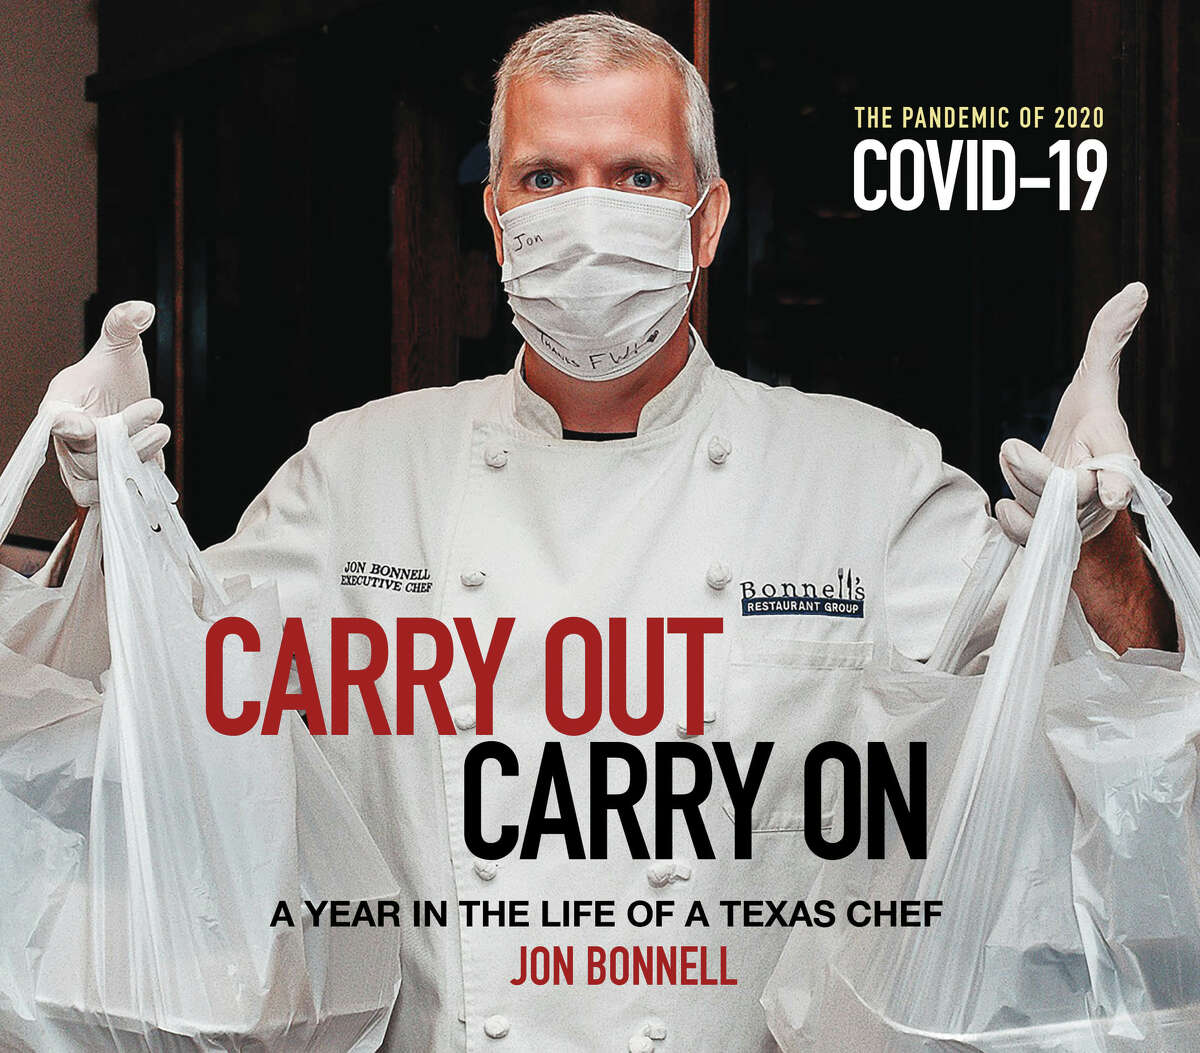 """Celebrity chef Jon Bonnell has a remarkable story to tell in his latest book, """"Carry Out, Carry On: A Year in the Life of a Texas Chef."""" The memoir chronicles the Fort Worth's restaurateur's struggle to keep his operations afloat during the onset of the COVID-19 pandemic."""